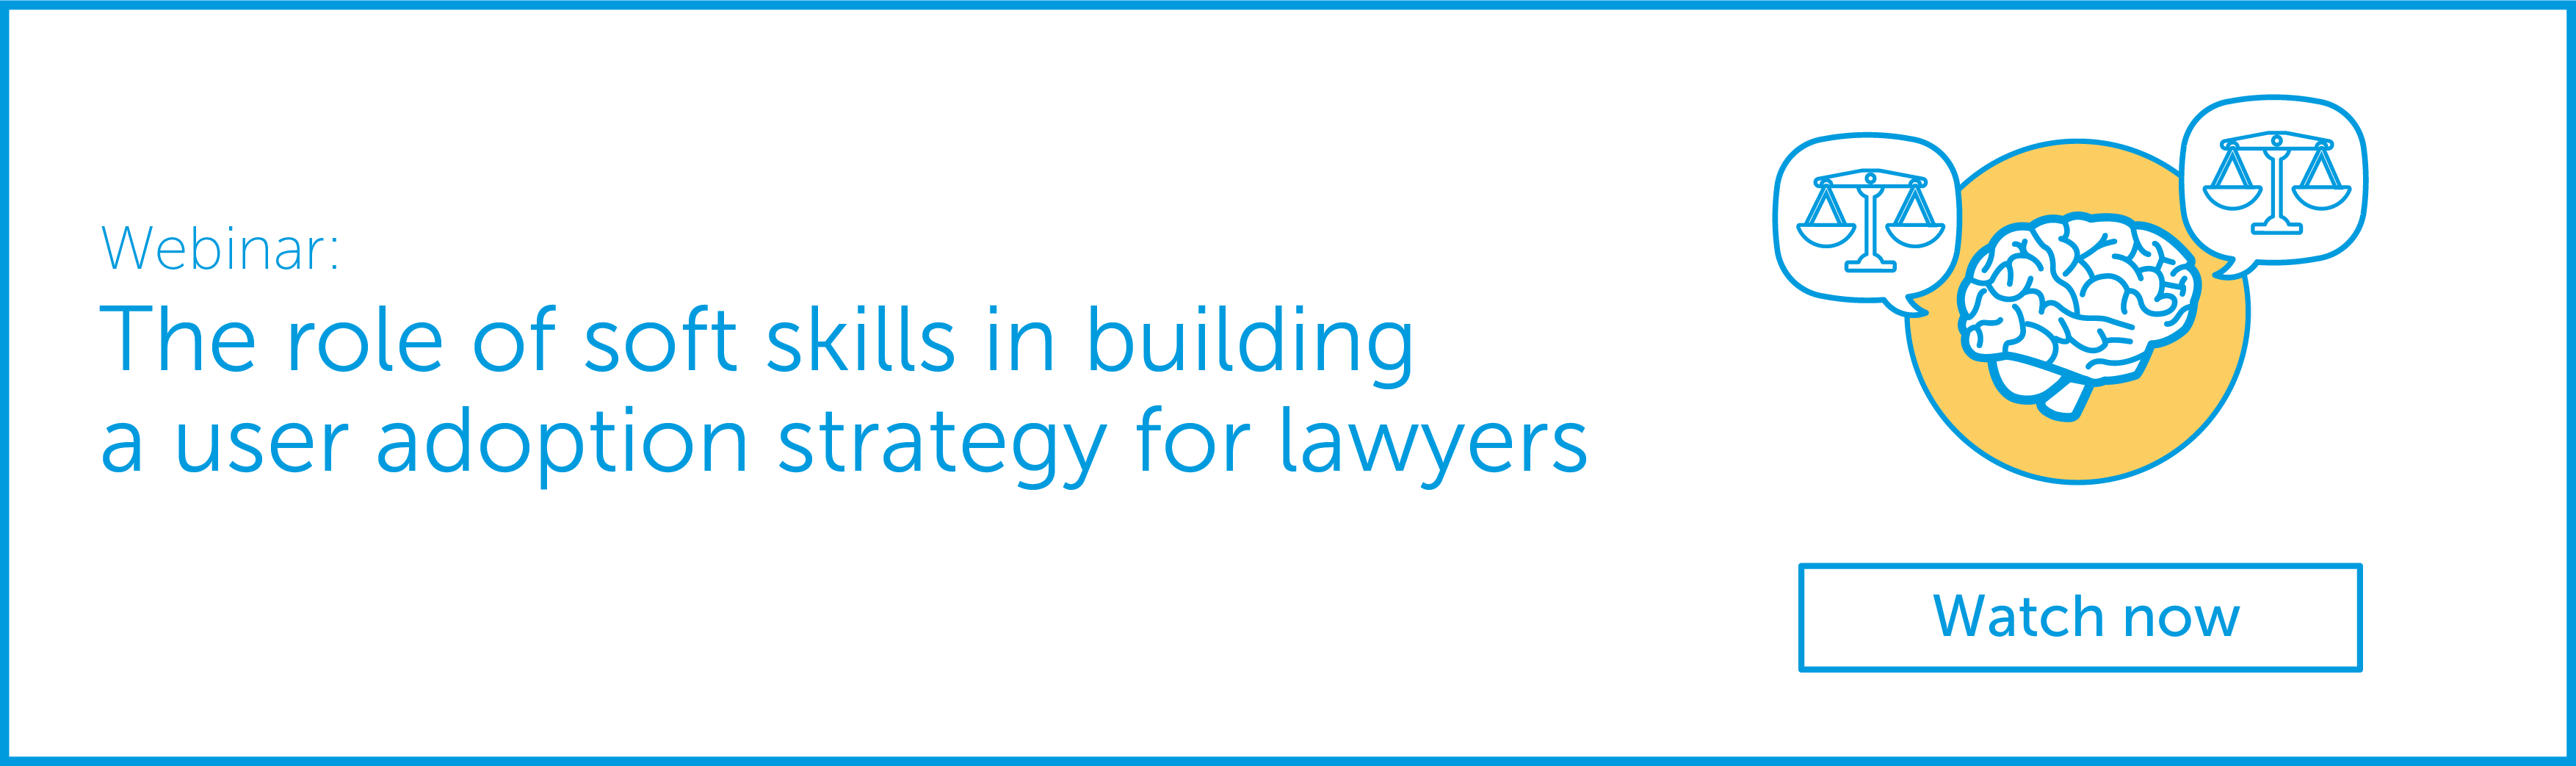 Webinar: The role of soft skills in building a user adoption strategy for lawyers